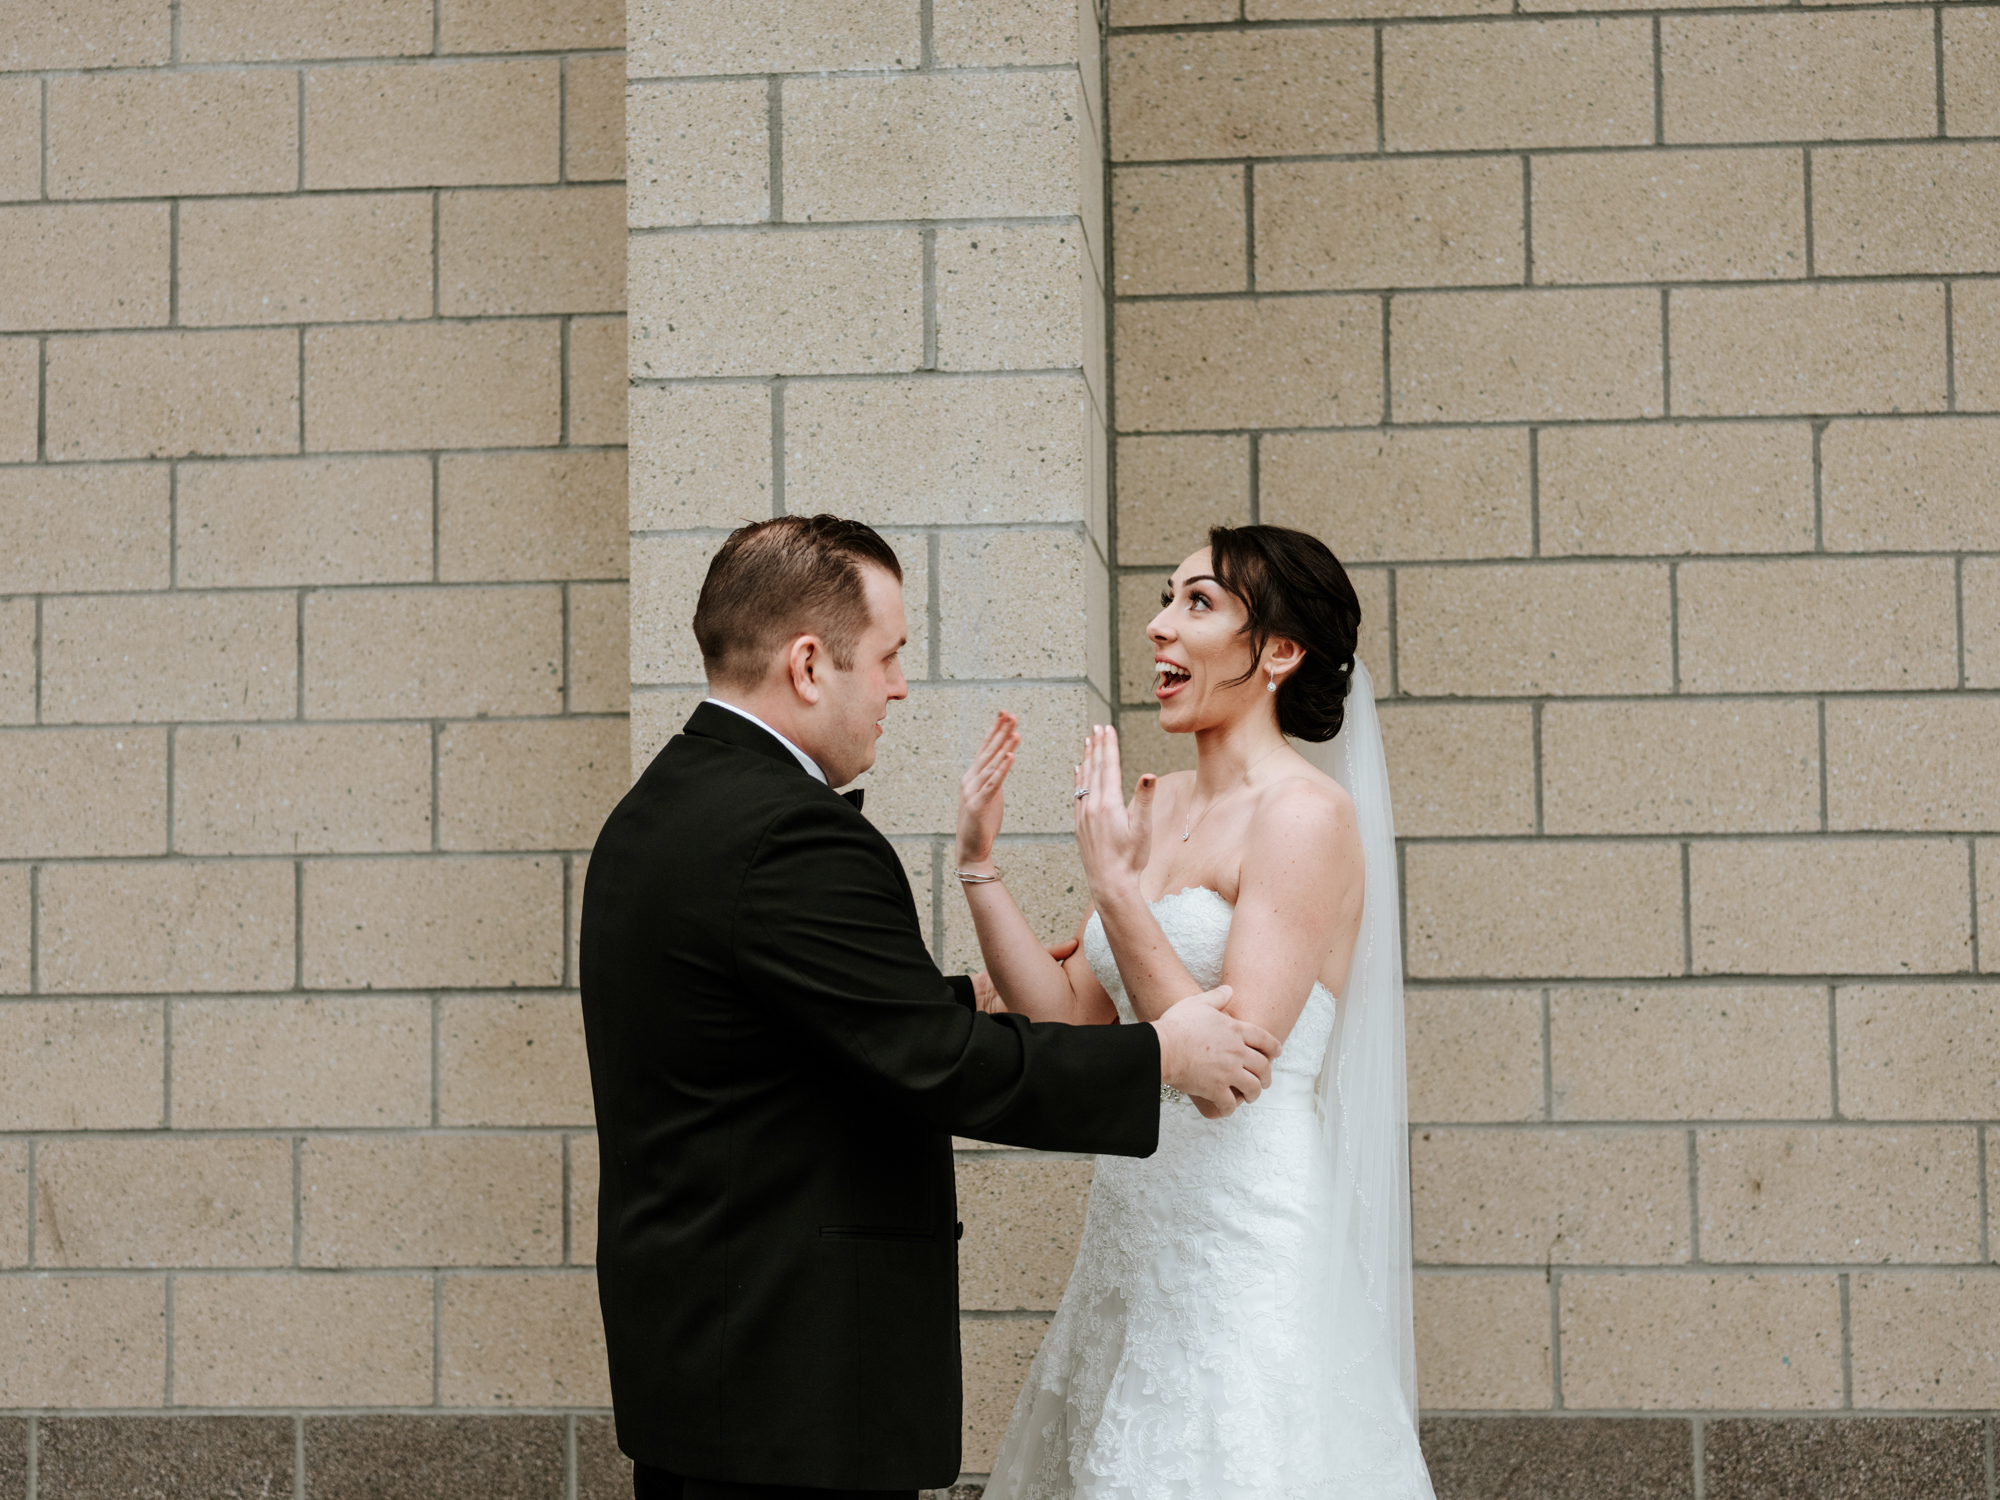 Stolen Glimpses Seattle Wedding Photographers 21.jpg